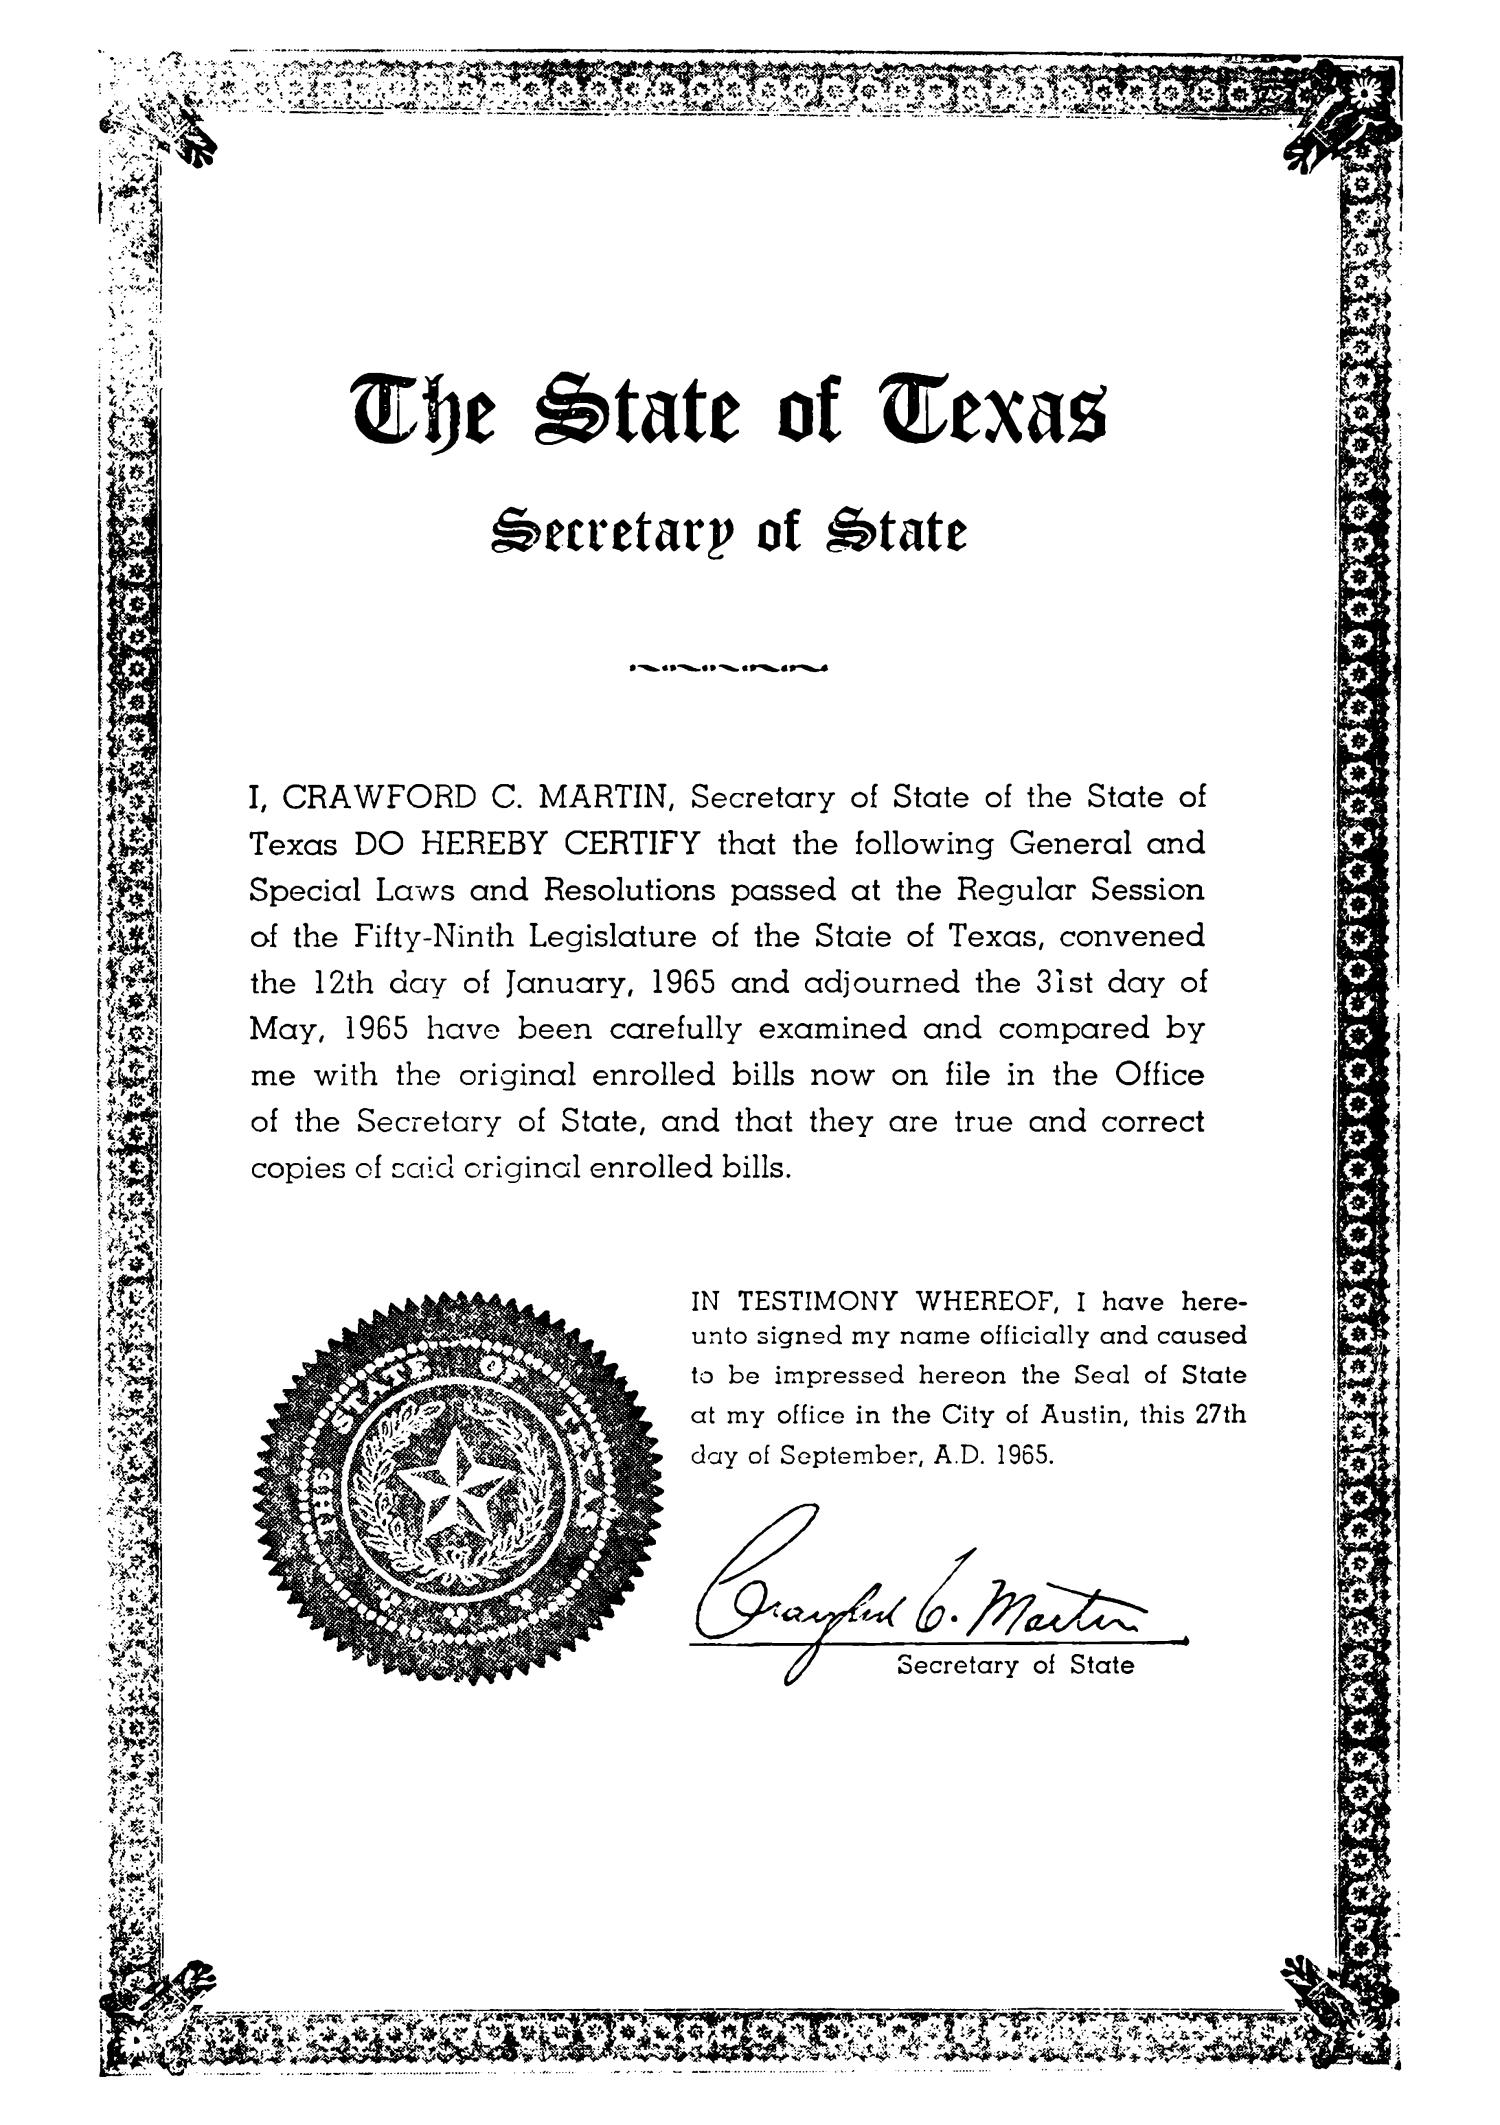 General and Special Laws of The State of Texas Passed By The Regular Session of the Fifty-Ninth Legislature, Volume 2                                                                                                      III